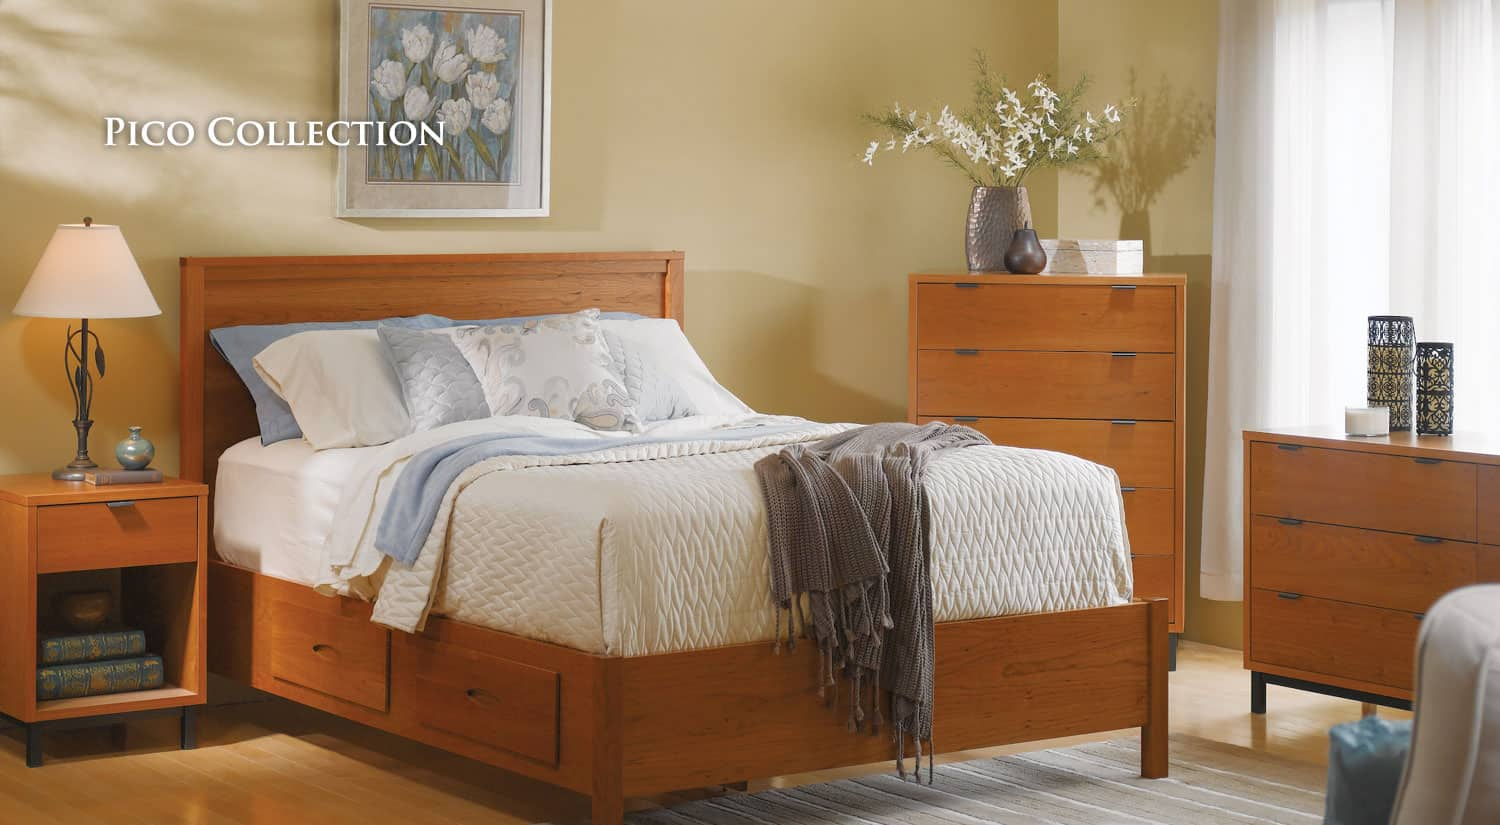 Solid Wood Furniture | Bedroom Furniture, Cherry Furniture ...